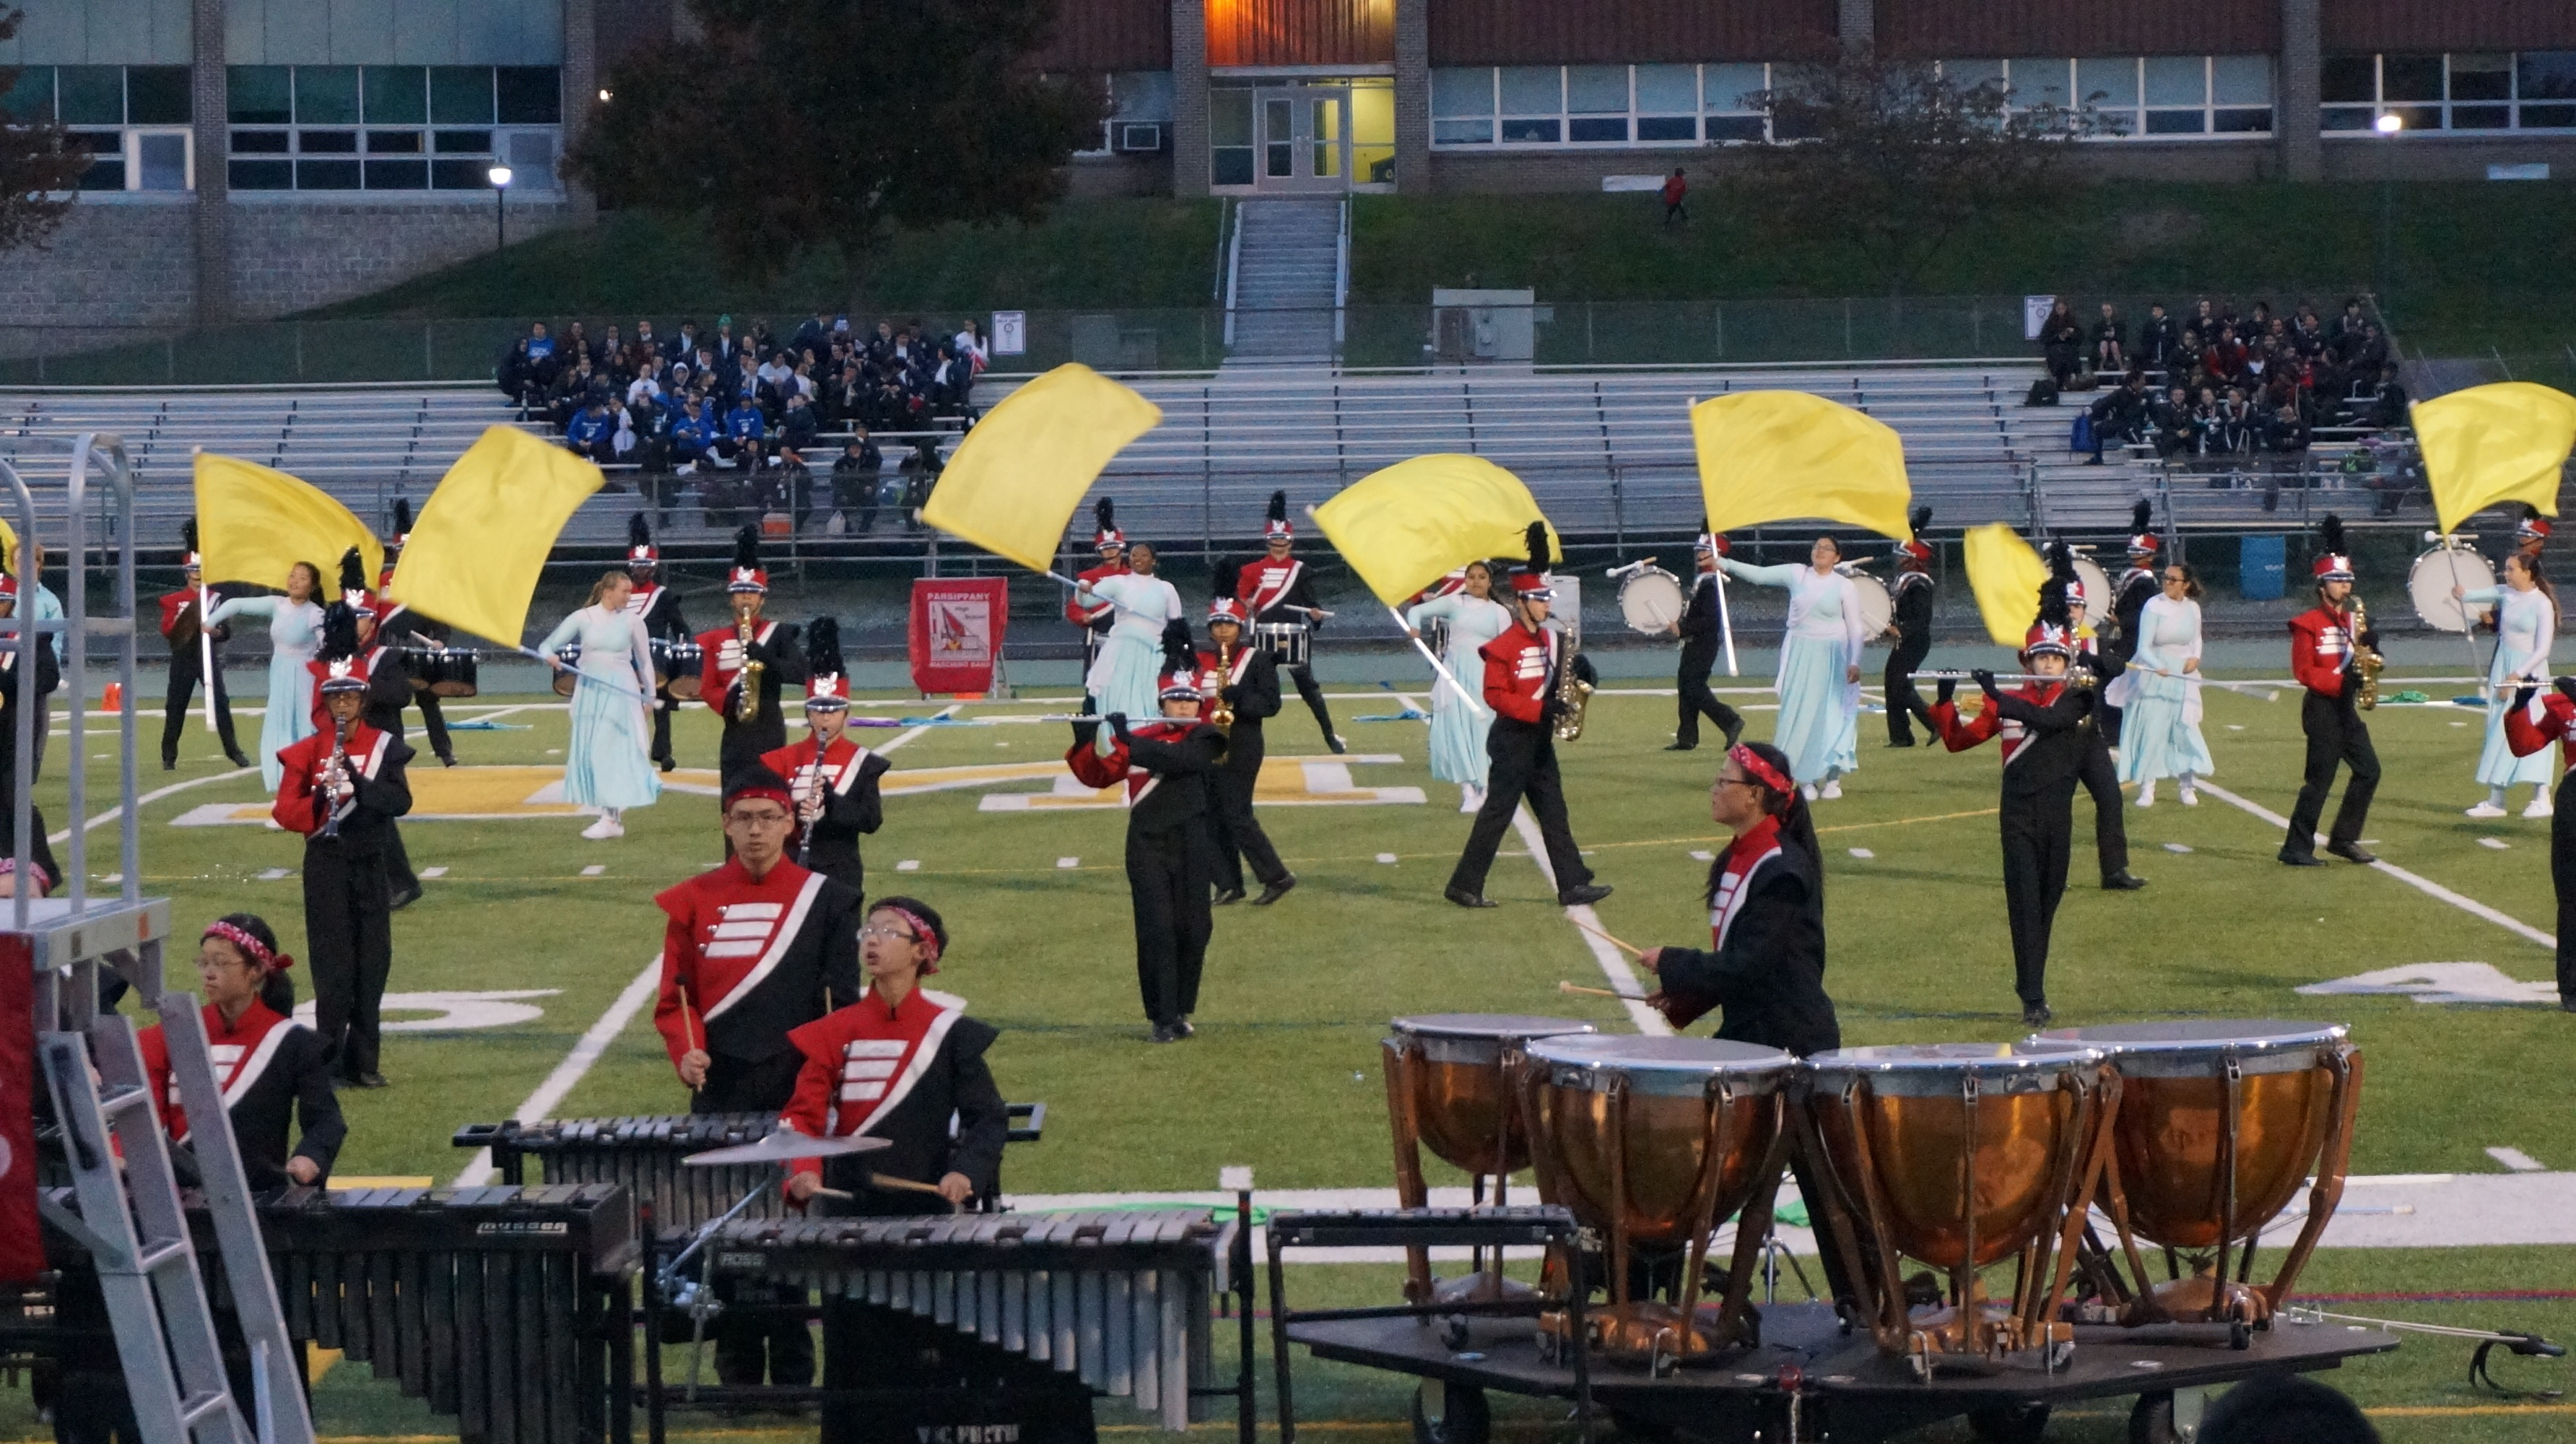 17486b93279a0d7dc042_band_competition_062.JPG